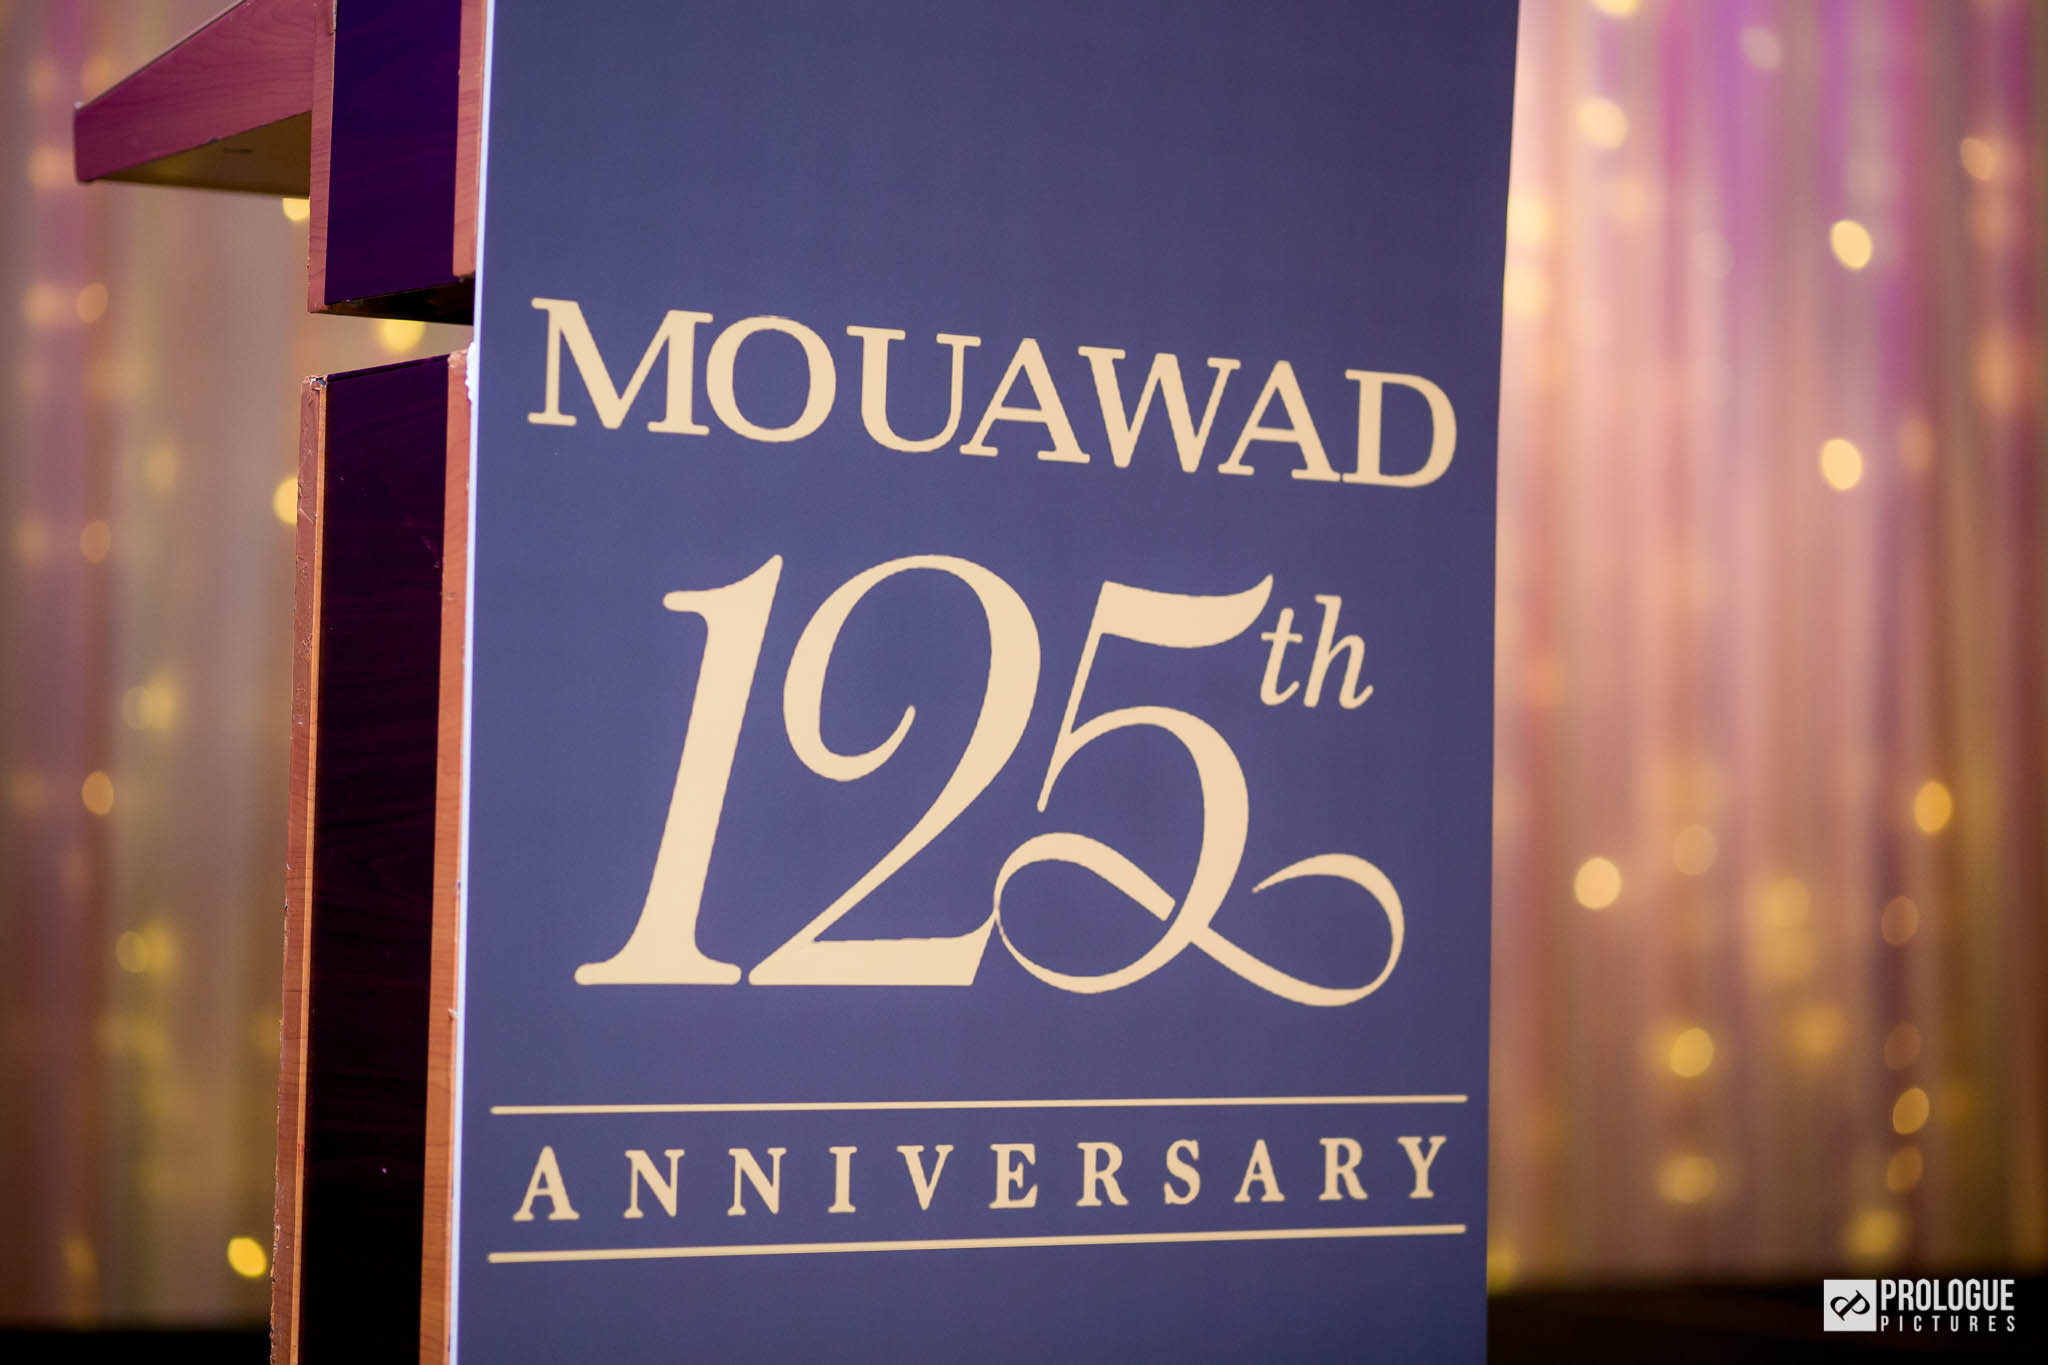 mouawad-125th-anniversary-event-photography-singapore-prologue-pictures-06